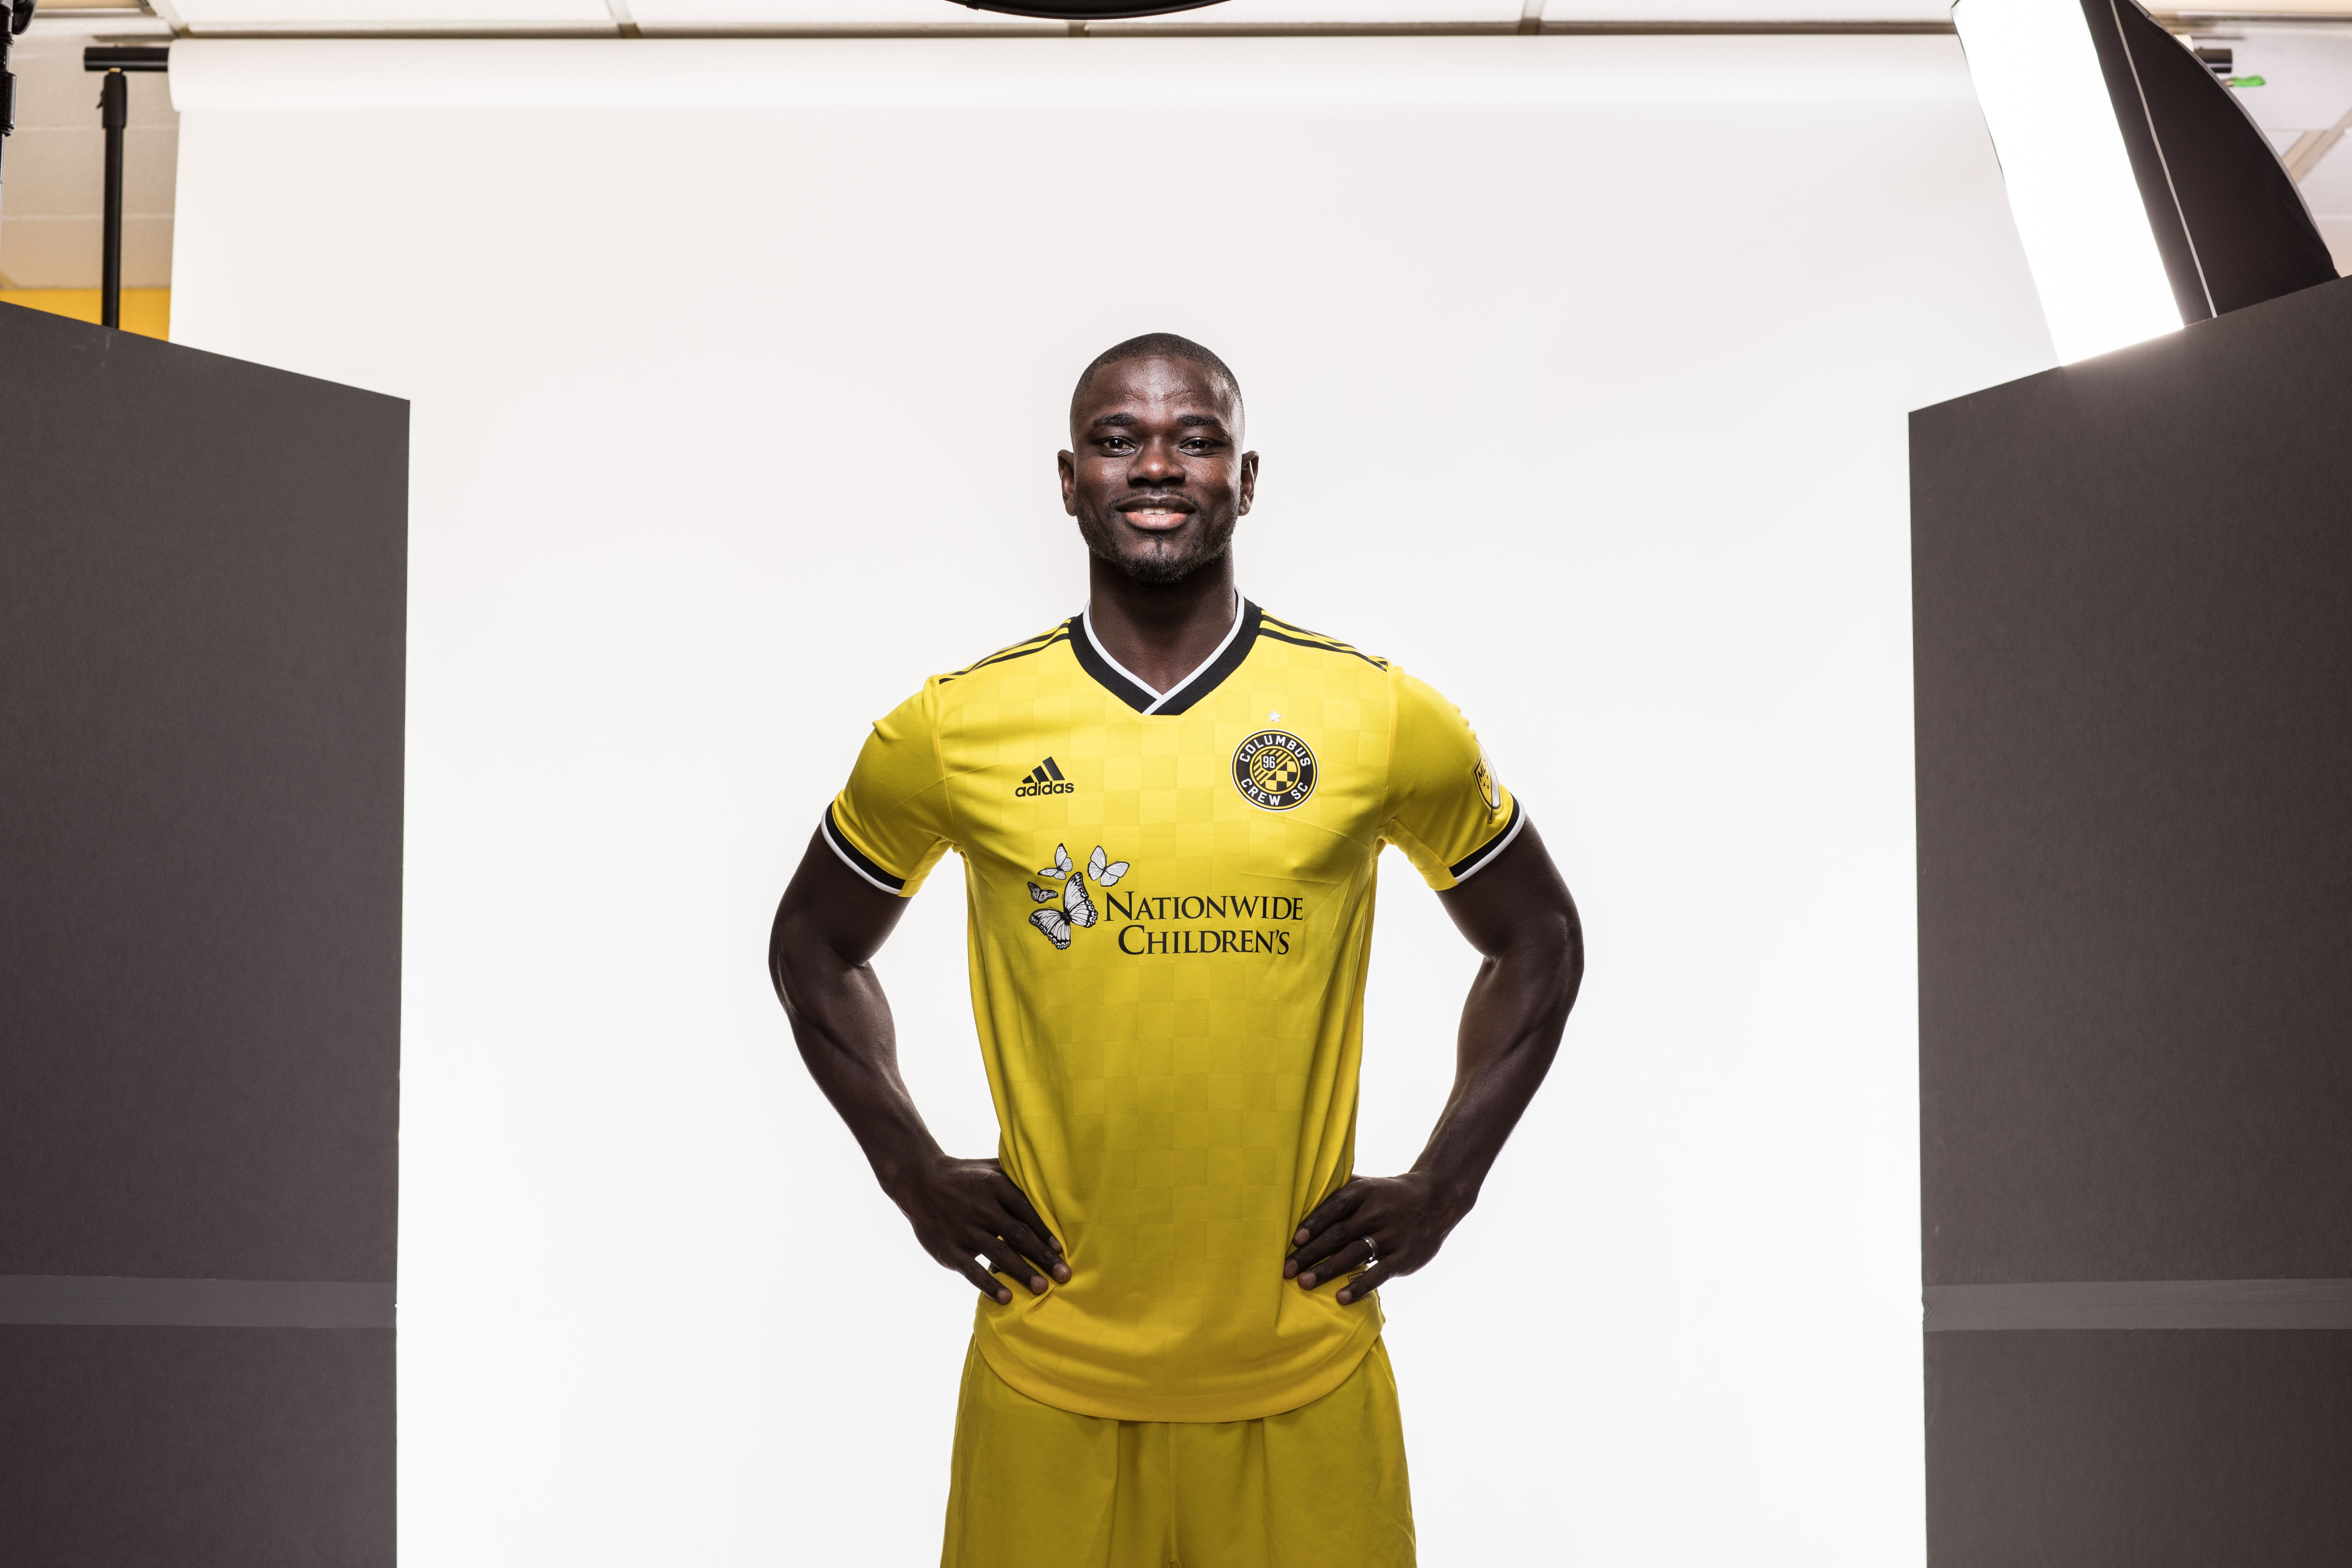 Columbus Crew player wearing Nationwide Children's Hospital jersey